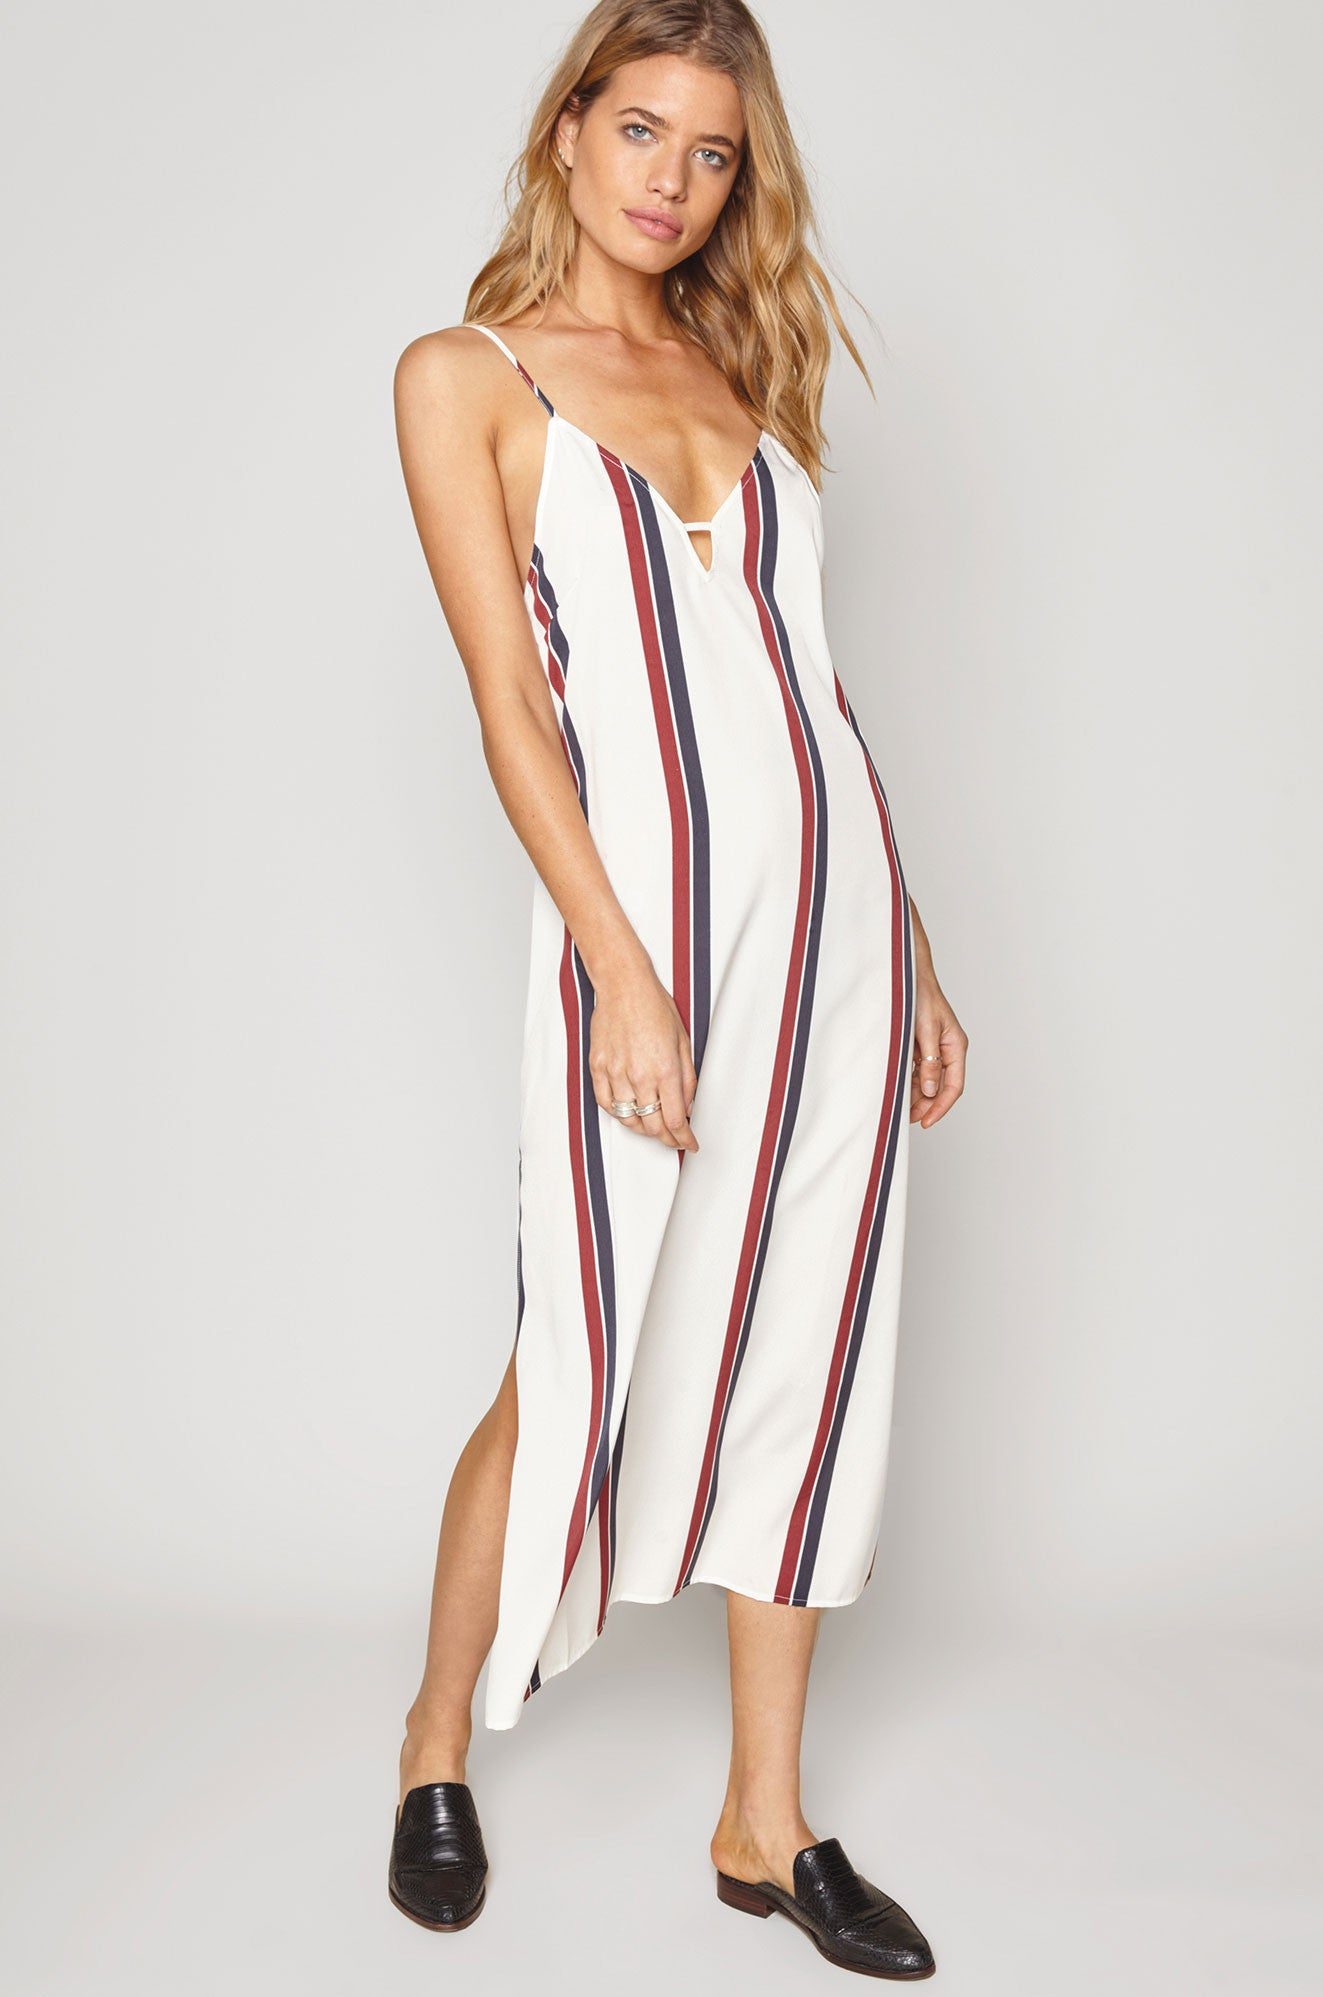 women's sleevelss adjustable spaghetti strap v-neck cami midi dress in white with blue and burgundy stripes.